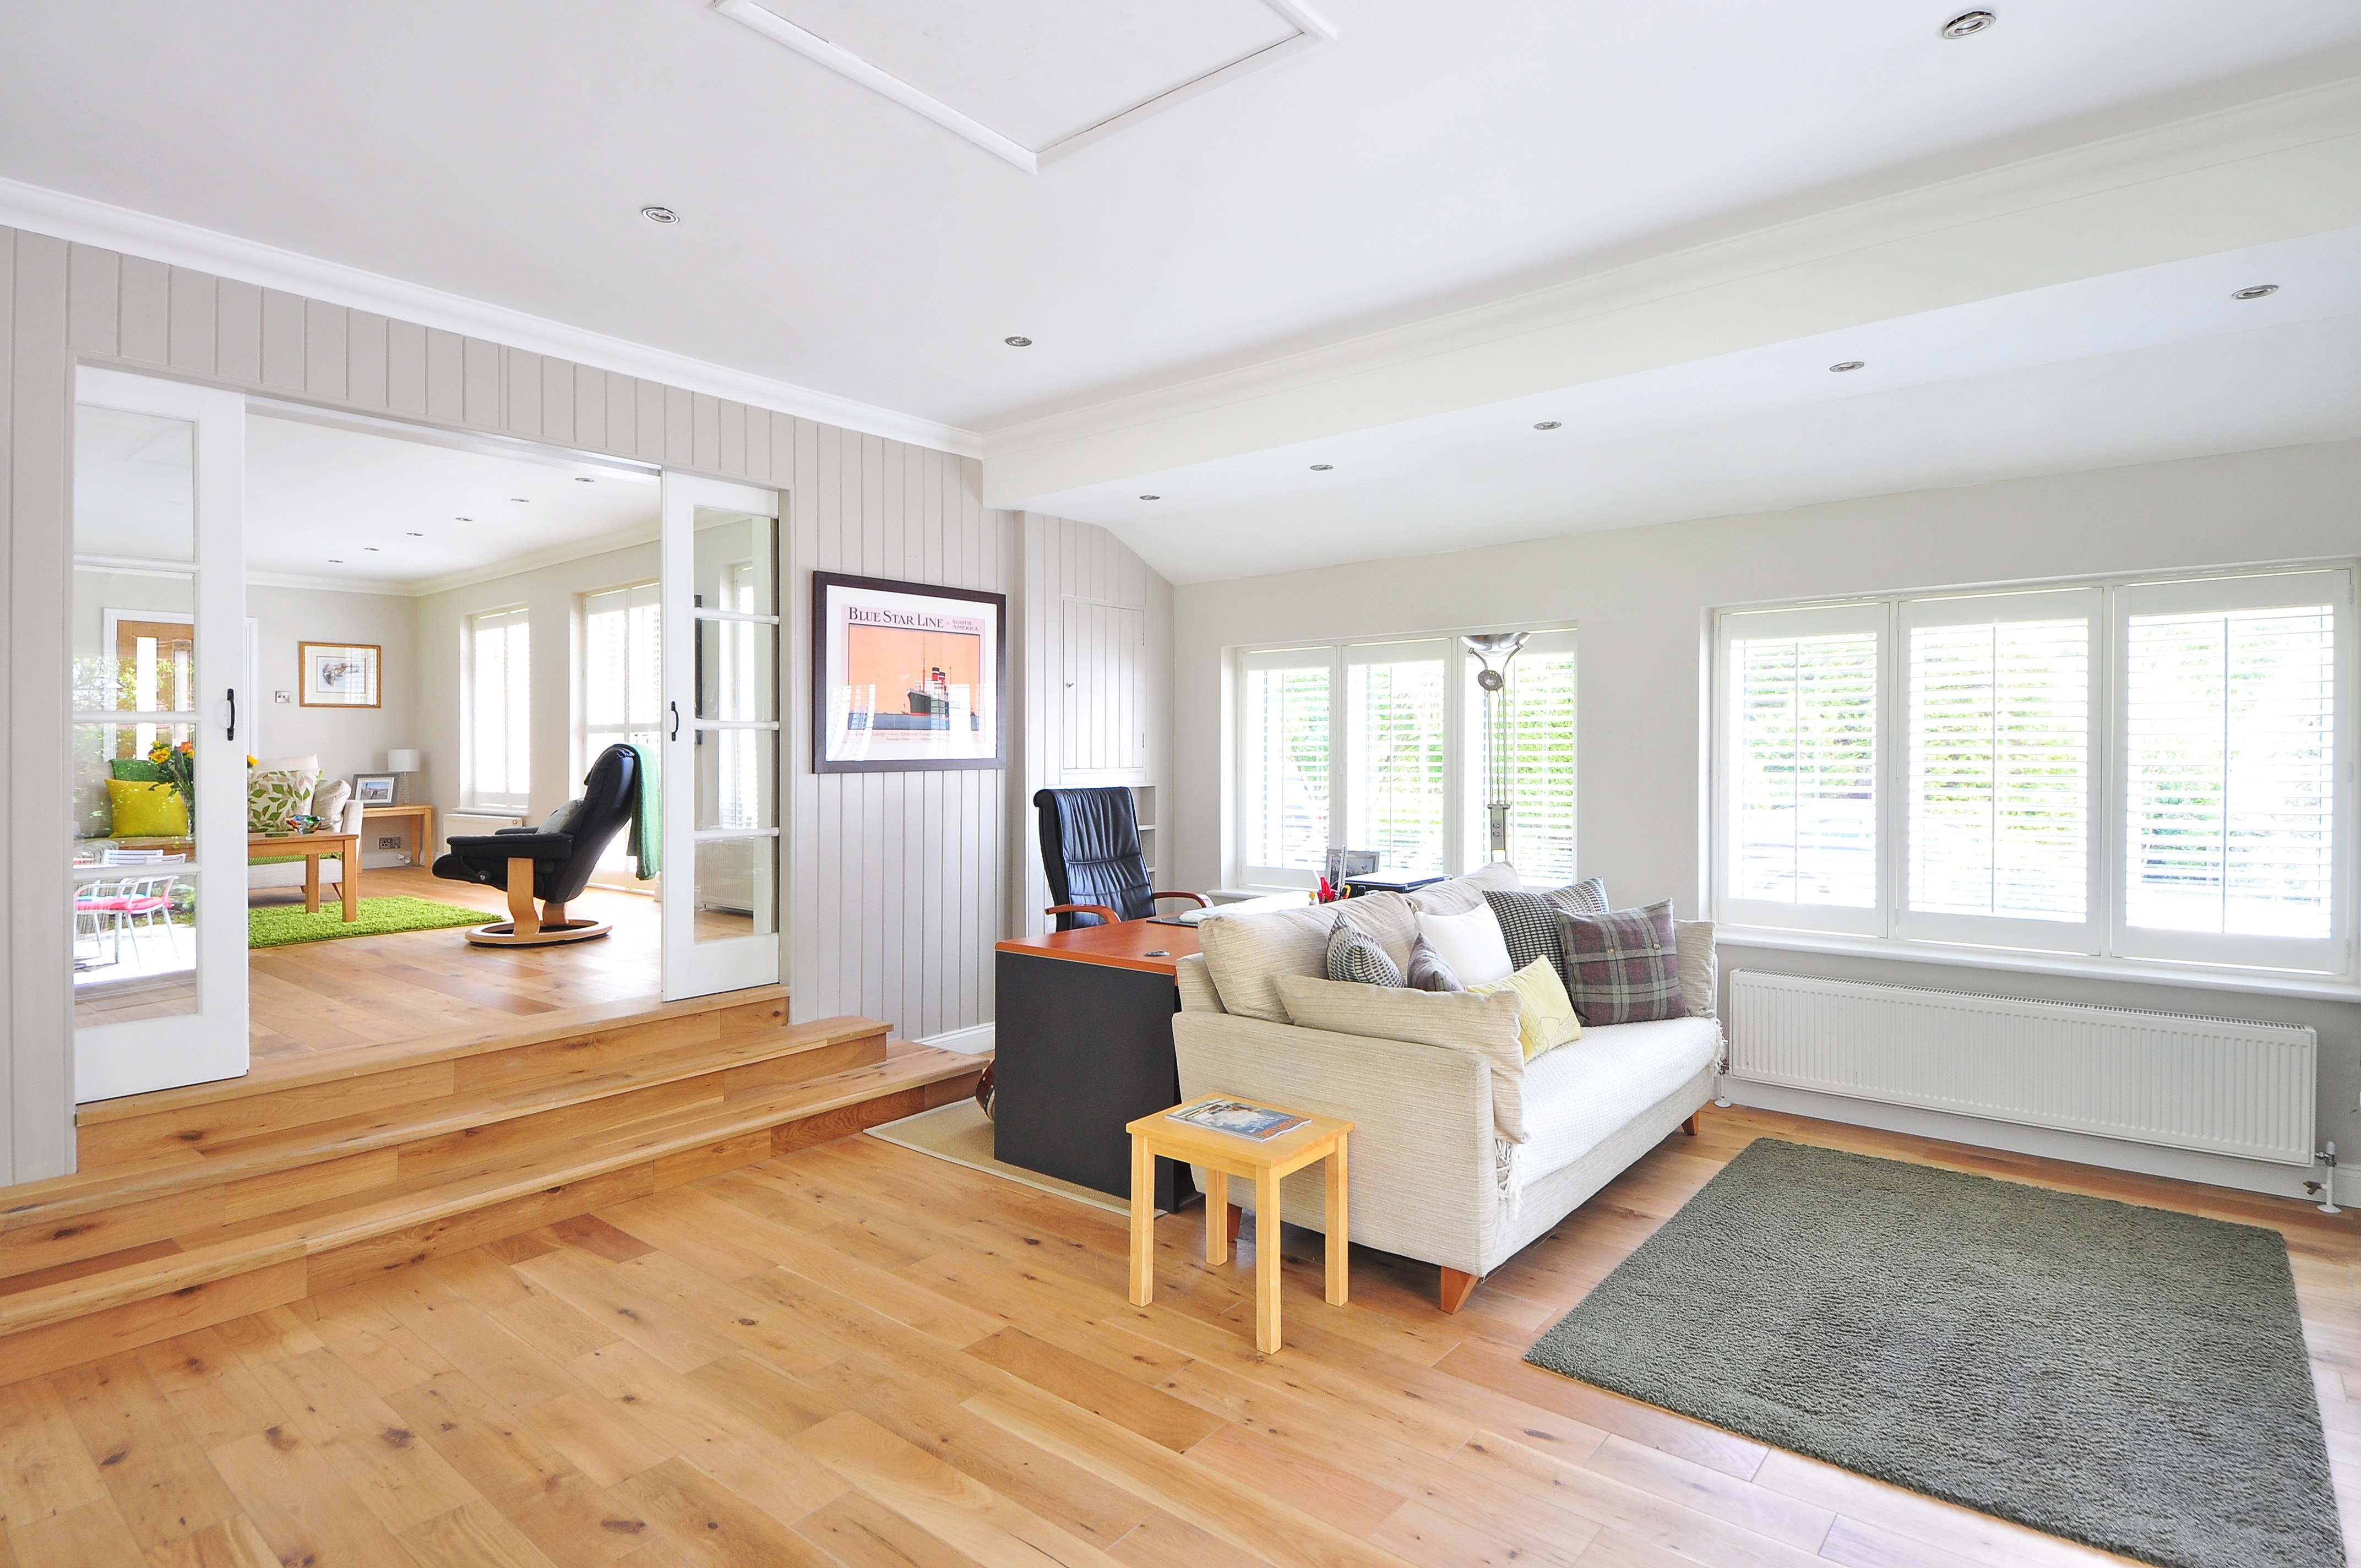 How Much Do Plantation Shutters Cost? And How Do They Increase Home Value?